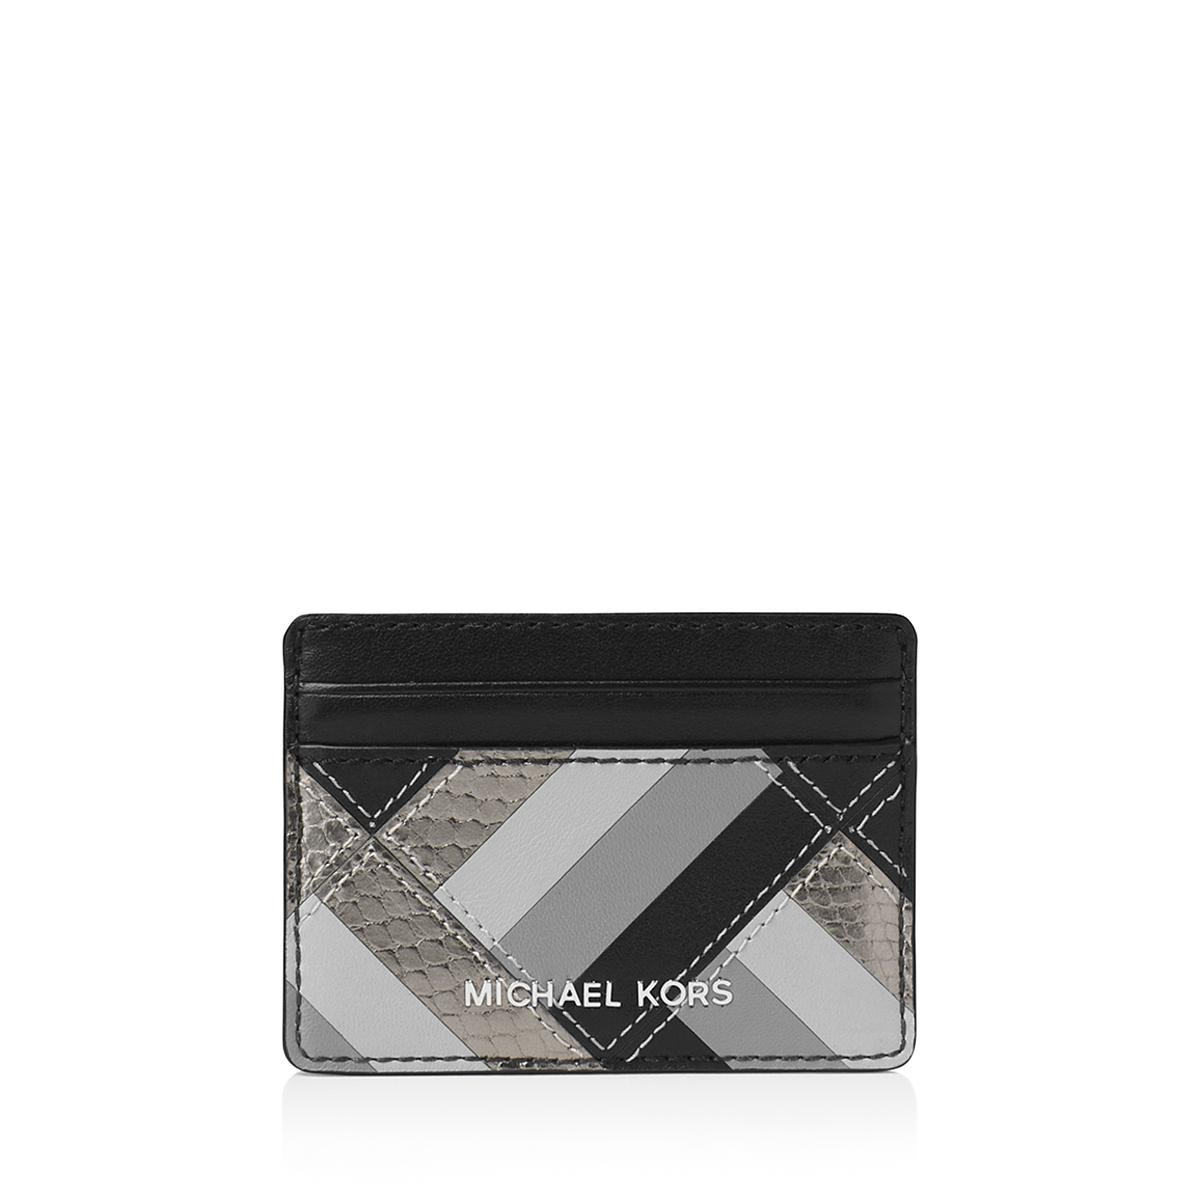 MICHAEL Michael Kors Womens Marquertry Patchwork Leather Card Case Black O/S